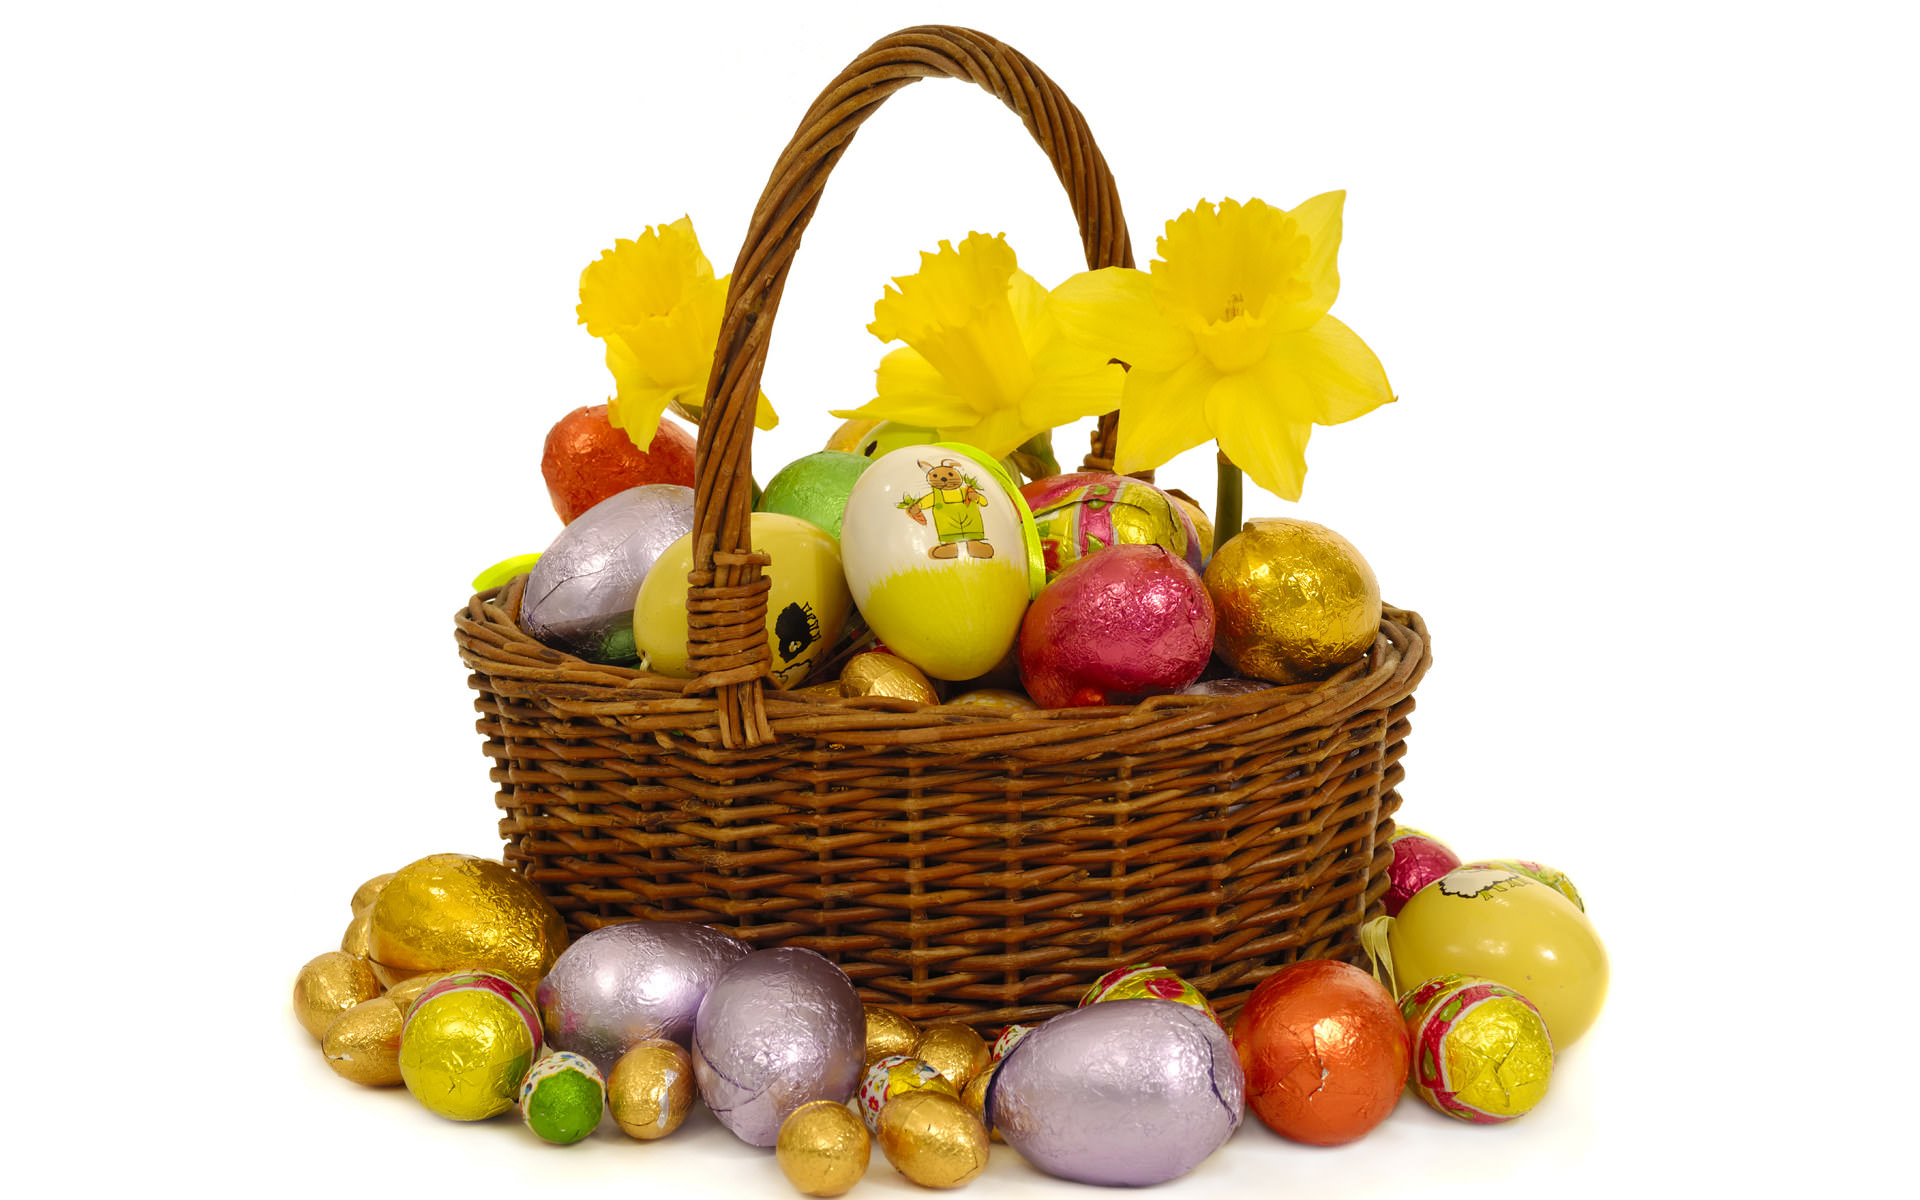 Easter,Background,Designs,Basket,Eggs,Flowers